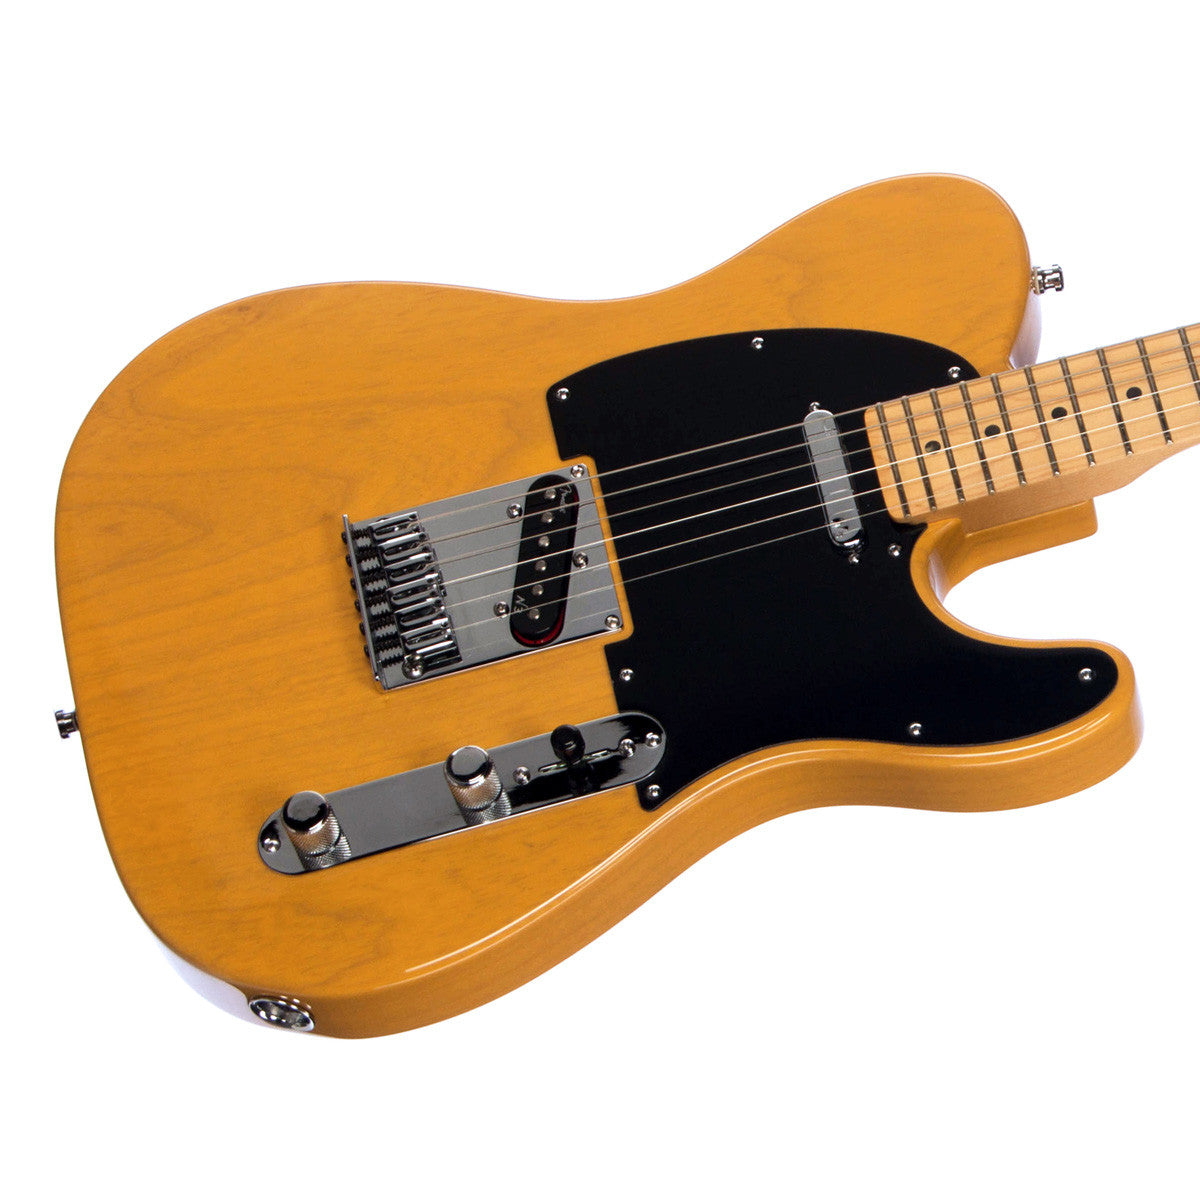 fender_american_deluxe_telecaster_am_dlx_tele_butterscotch_blonde_maple_neck_electric_guitar_0119502750_frontbody american deluxe telecaster wiring diagrams dolgular com fender american deluxe telecaster wiring diagram at gsmportal.co